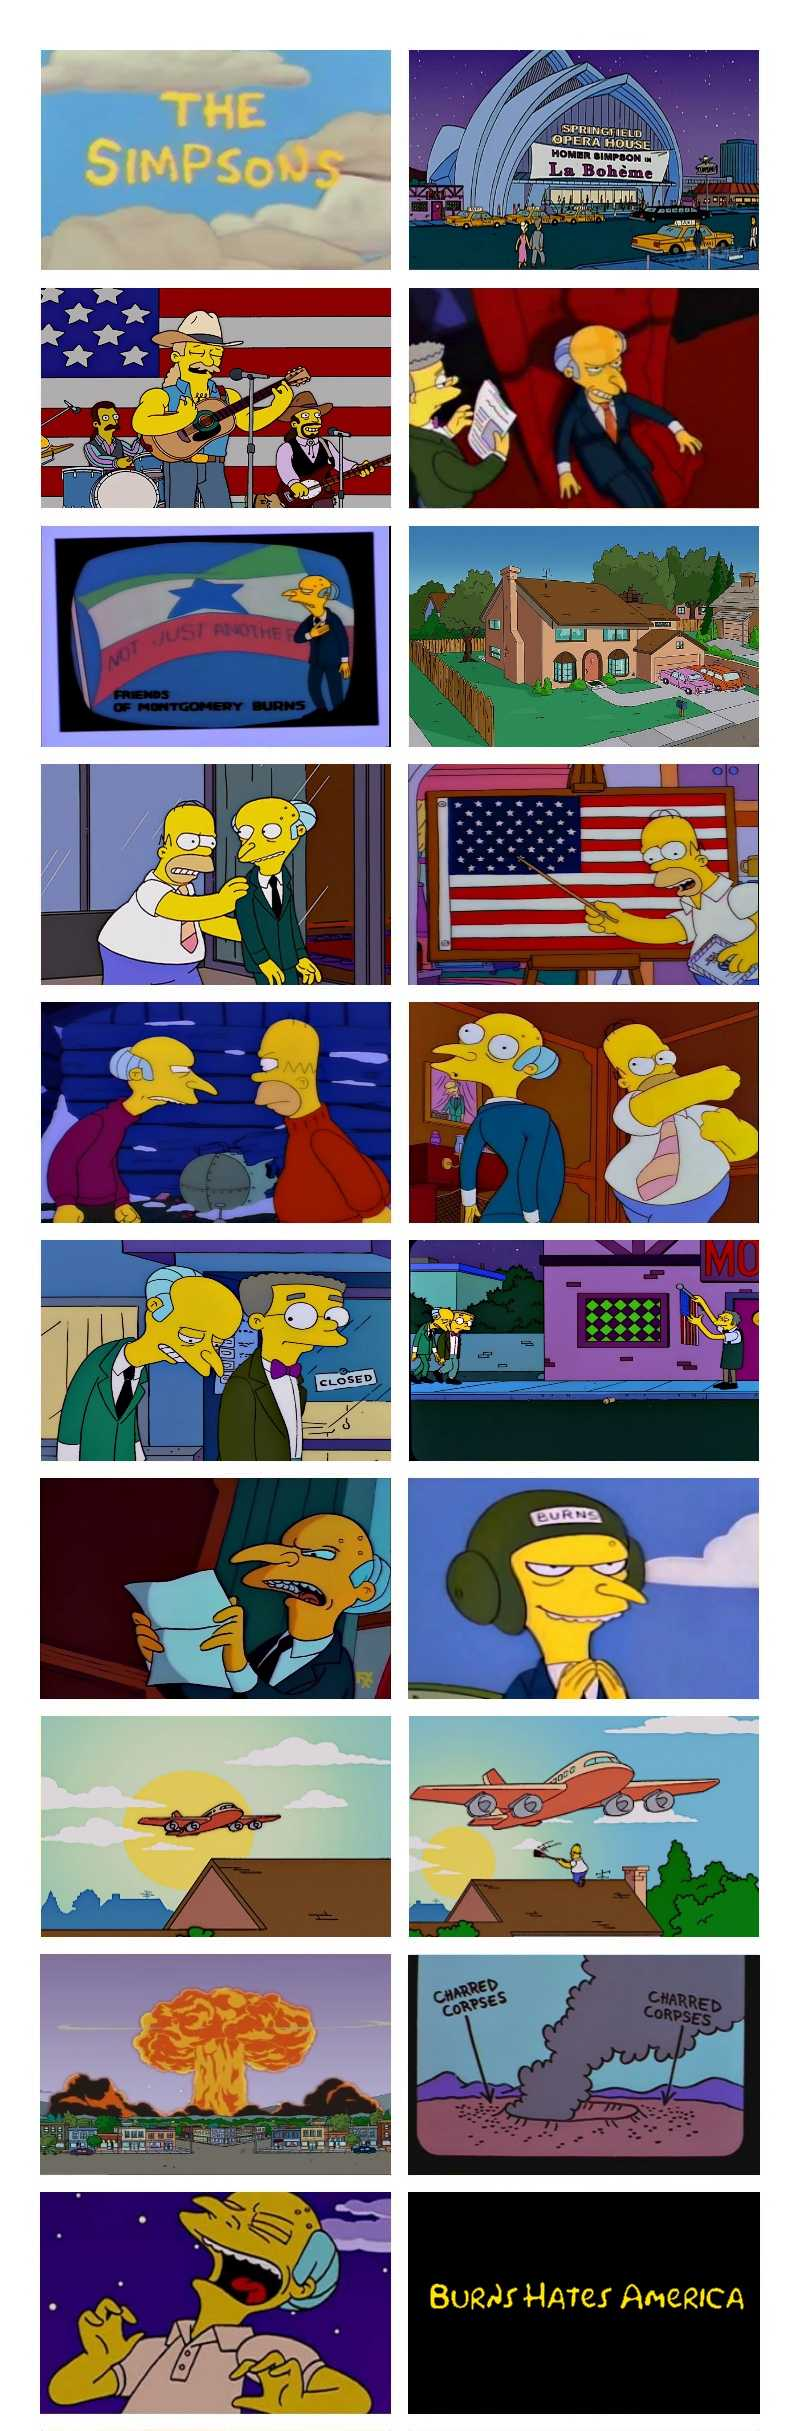 Burns explodes Springfield after seeing how patriotic the town is.